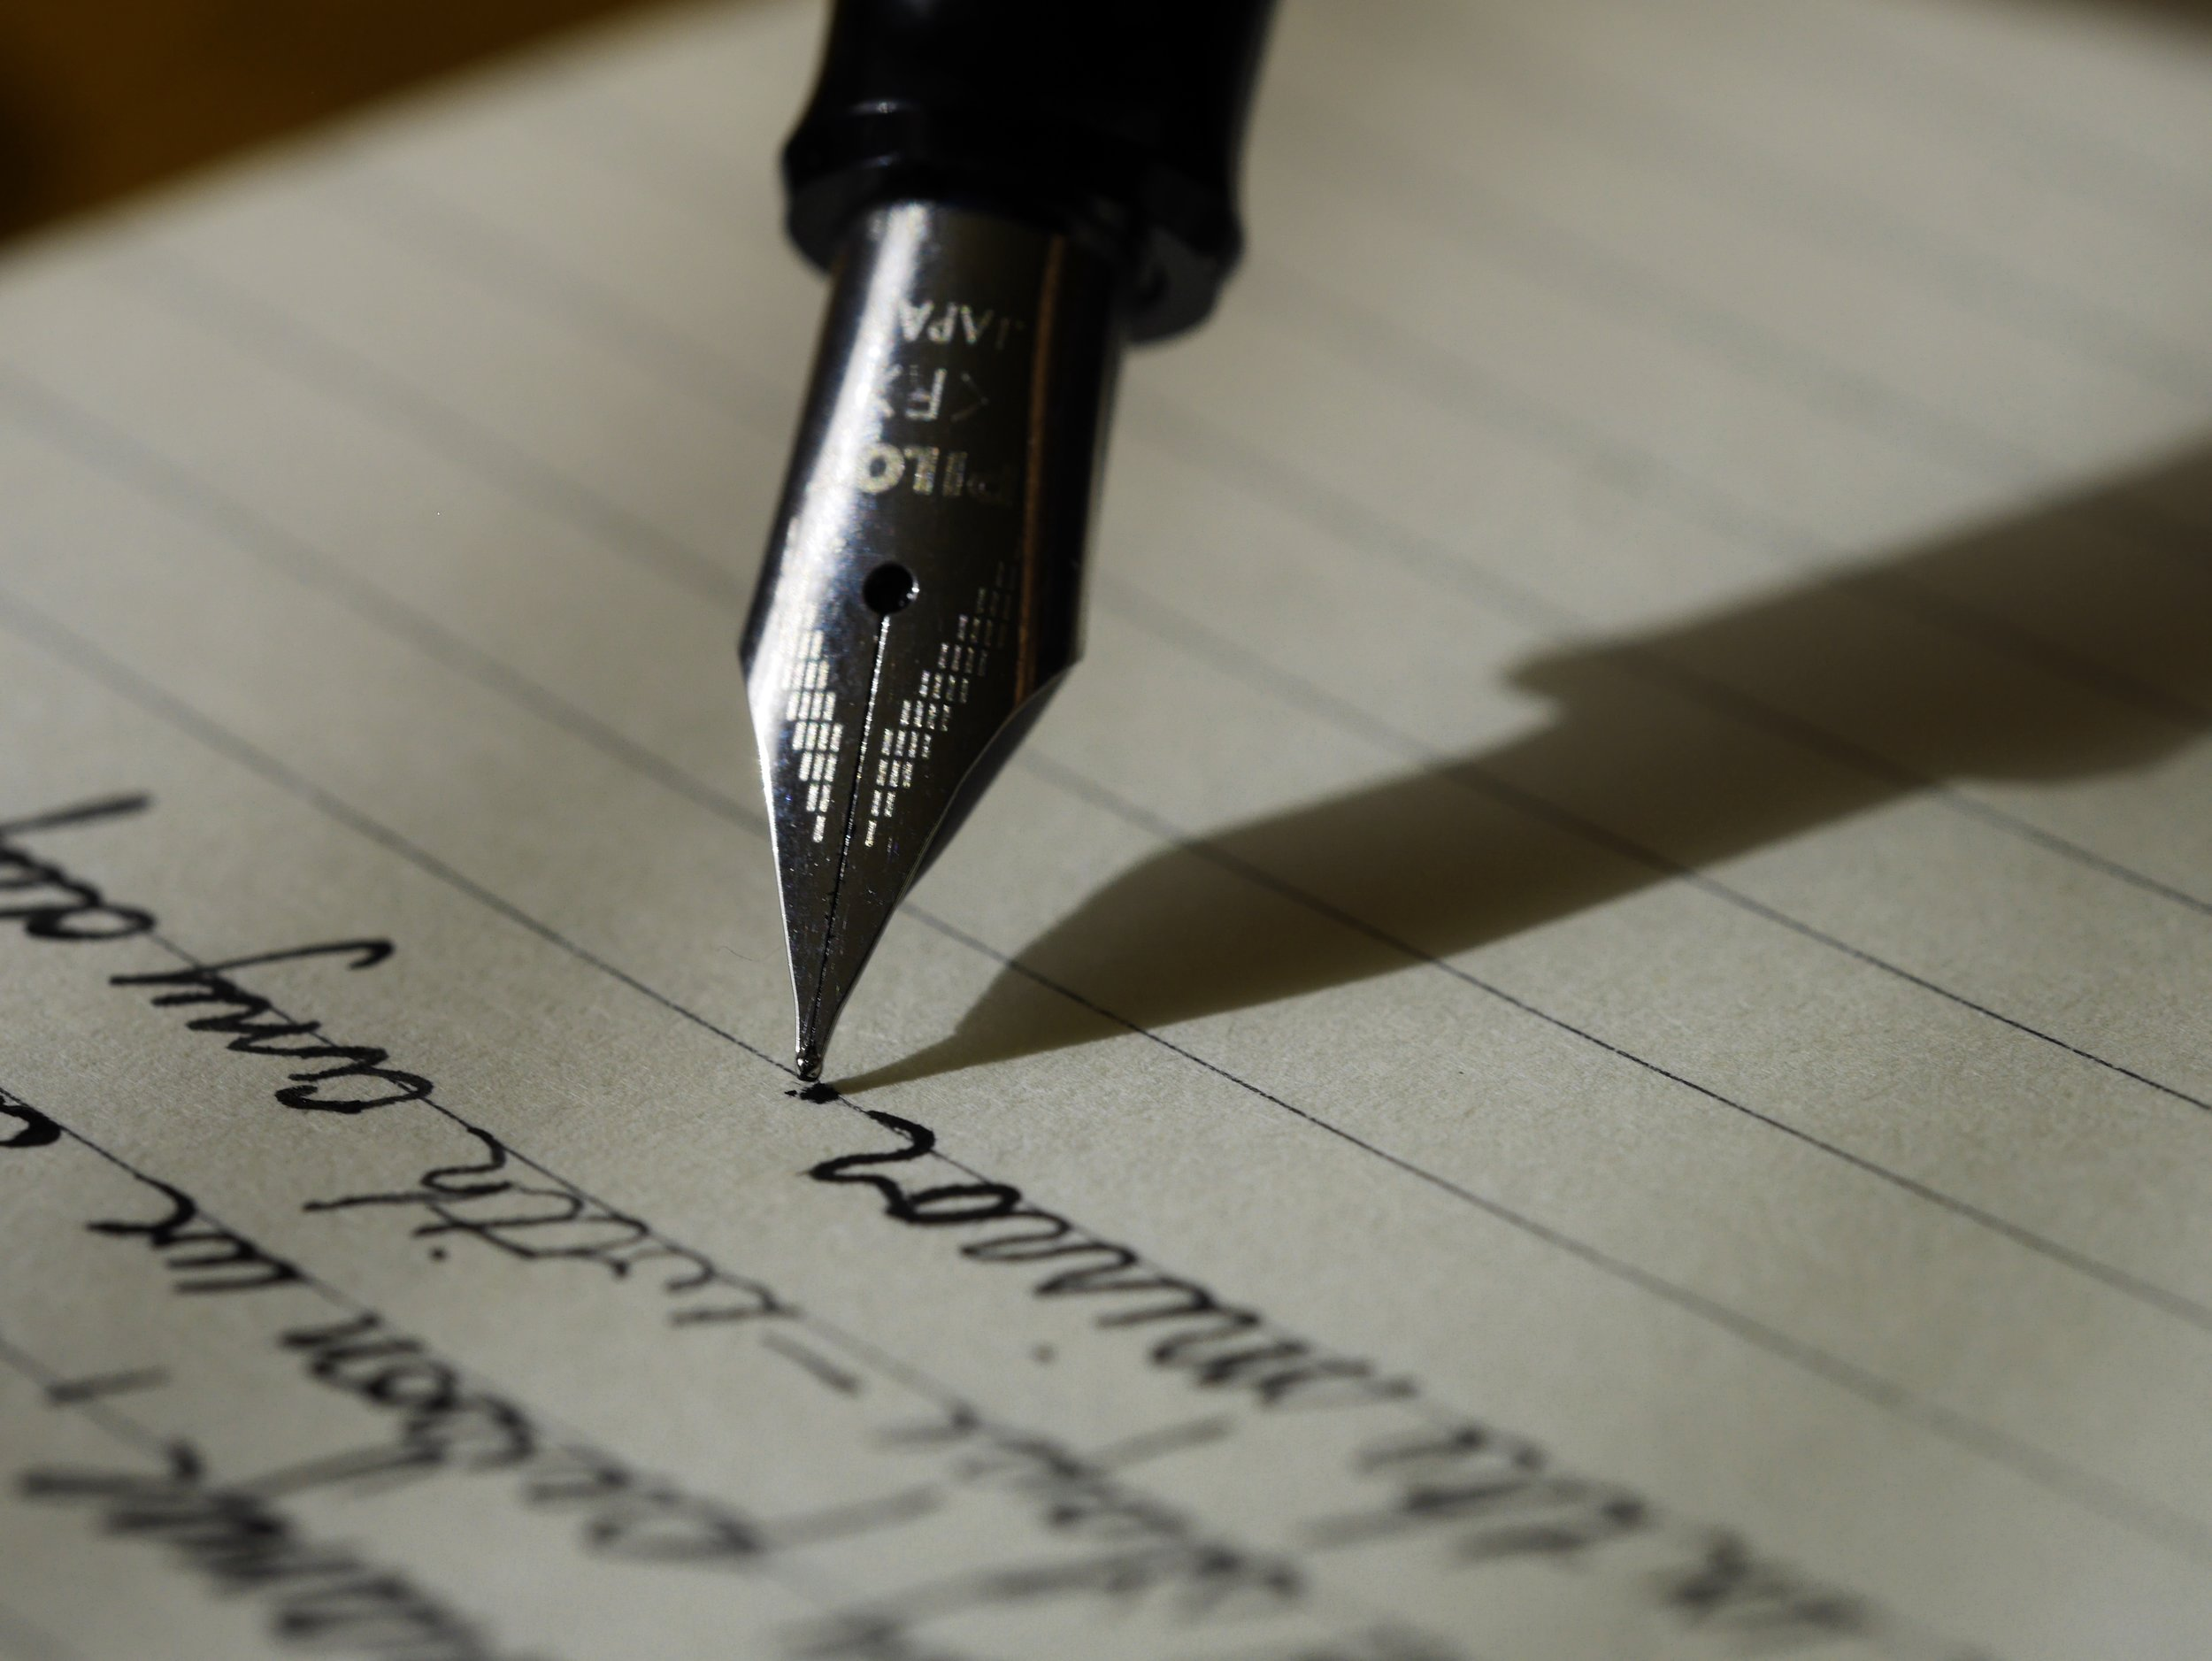 Don't edit your writing - too soon